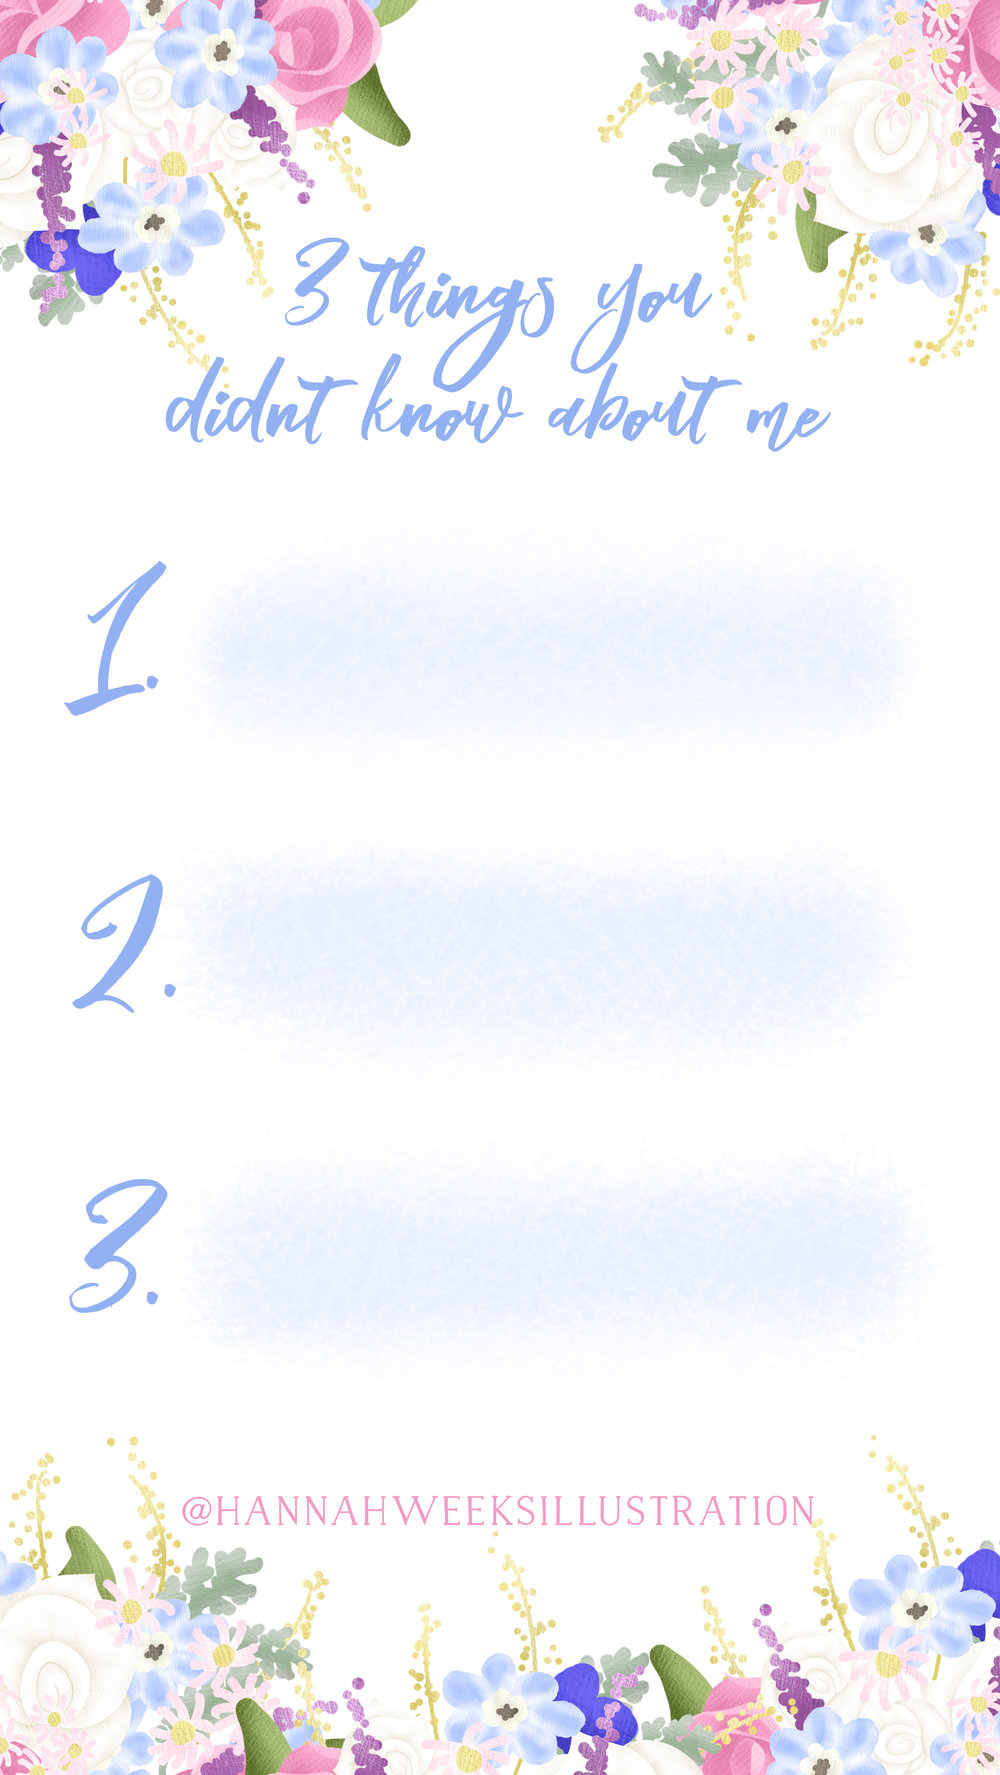 Hannah Weeks Illustration - Three facts about me.jpg